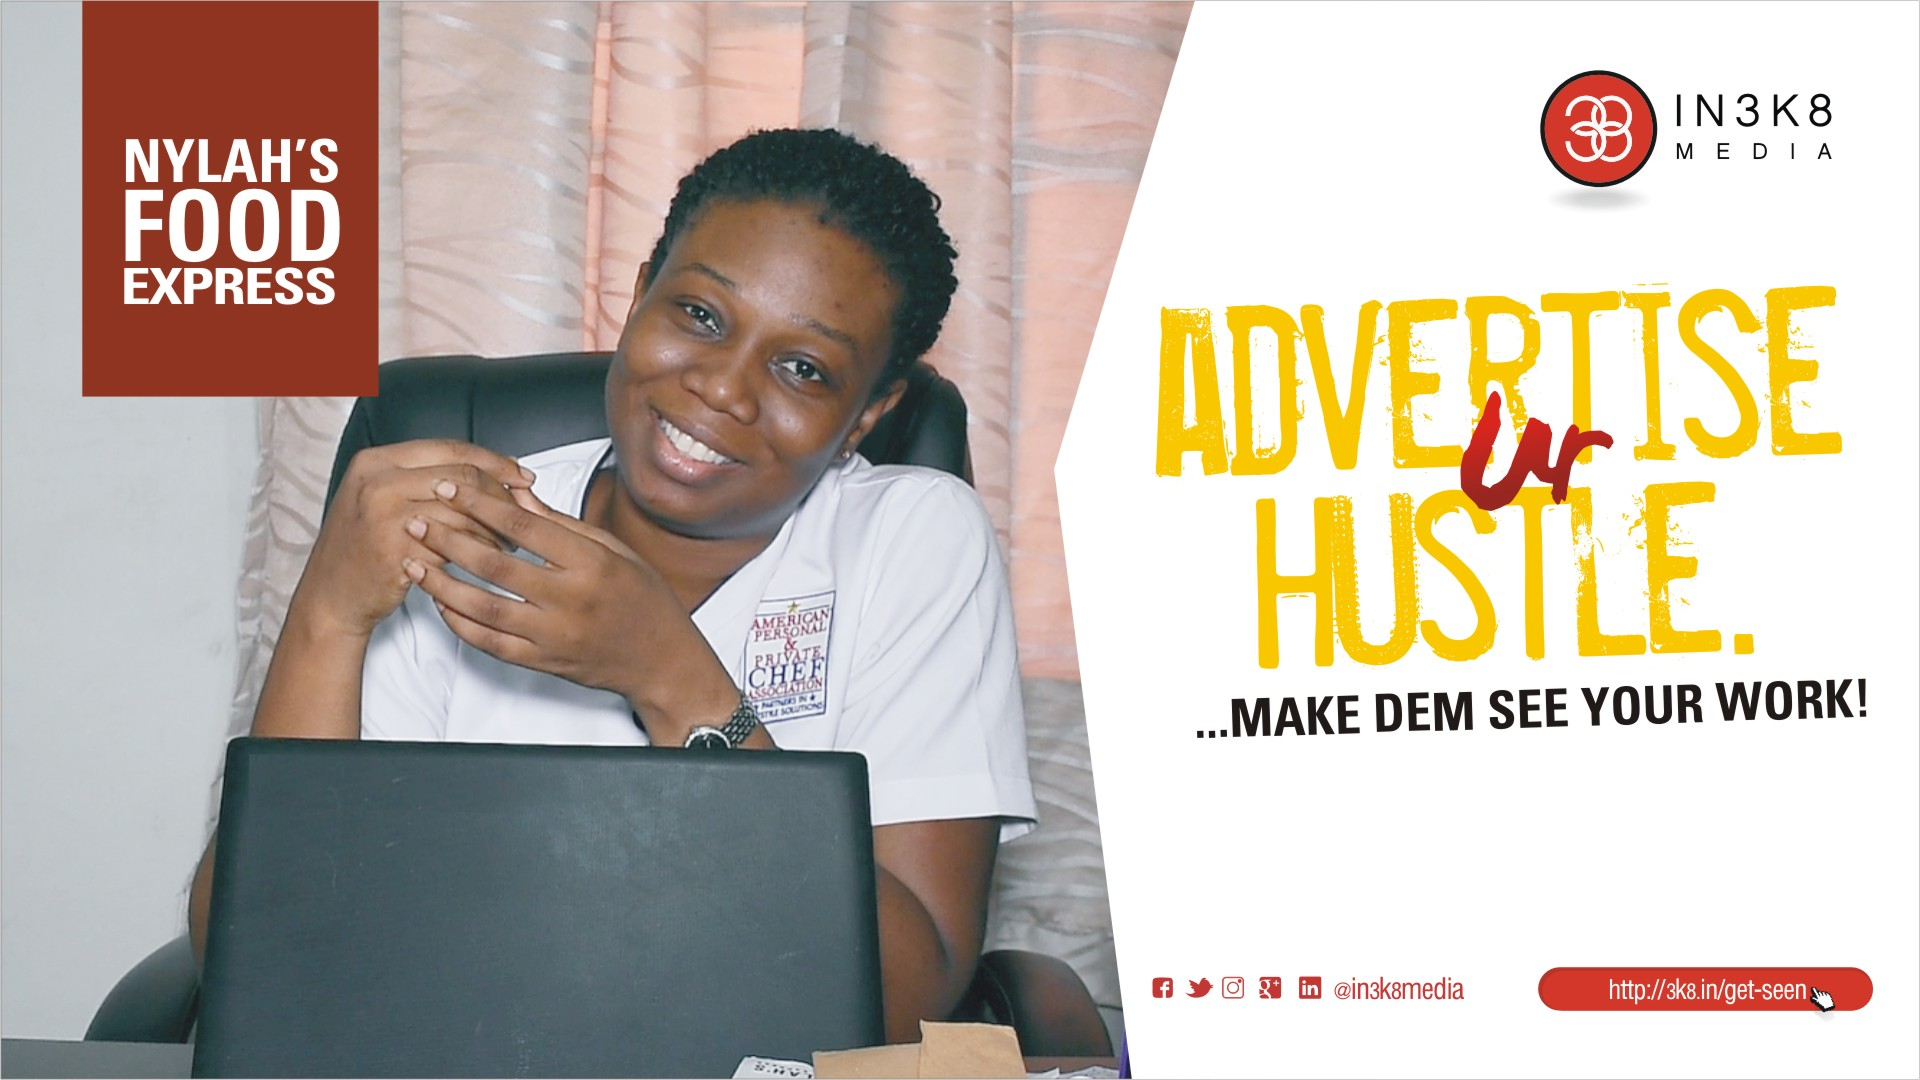 Advertise Your Hustle